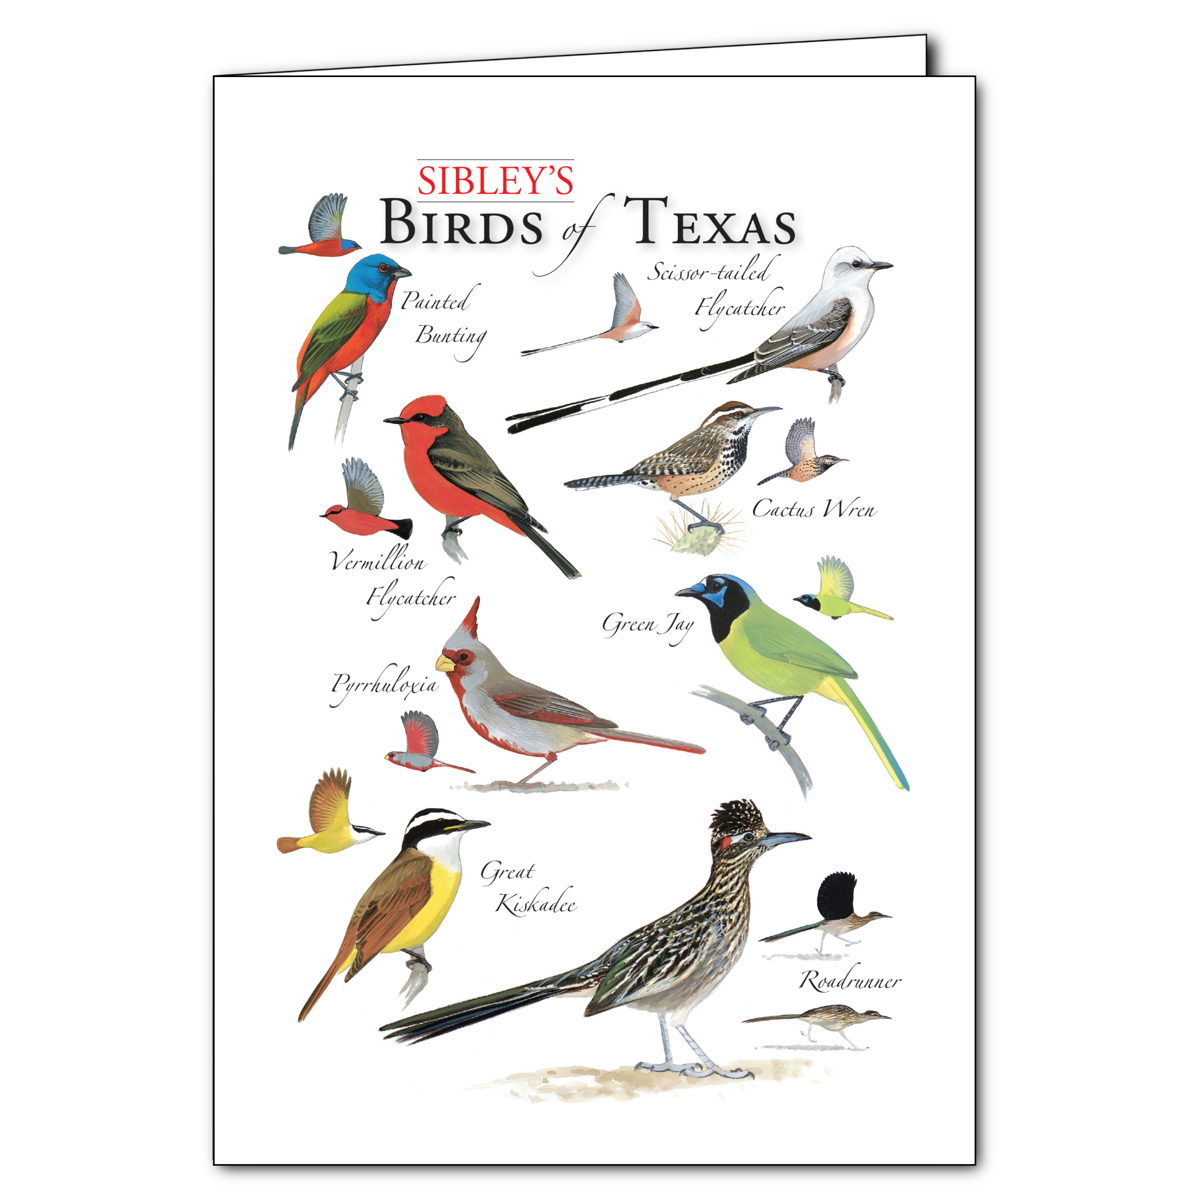 Sibleys birds of texas regional cardset of 6 greeting cards sibleys birds of texas regional card set of 6 greeting cards new m4hsunfo